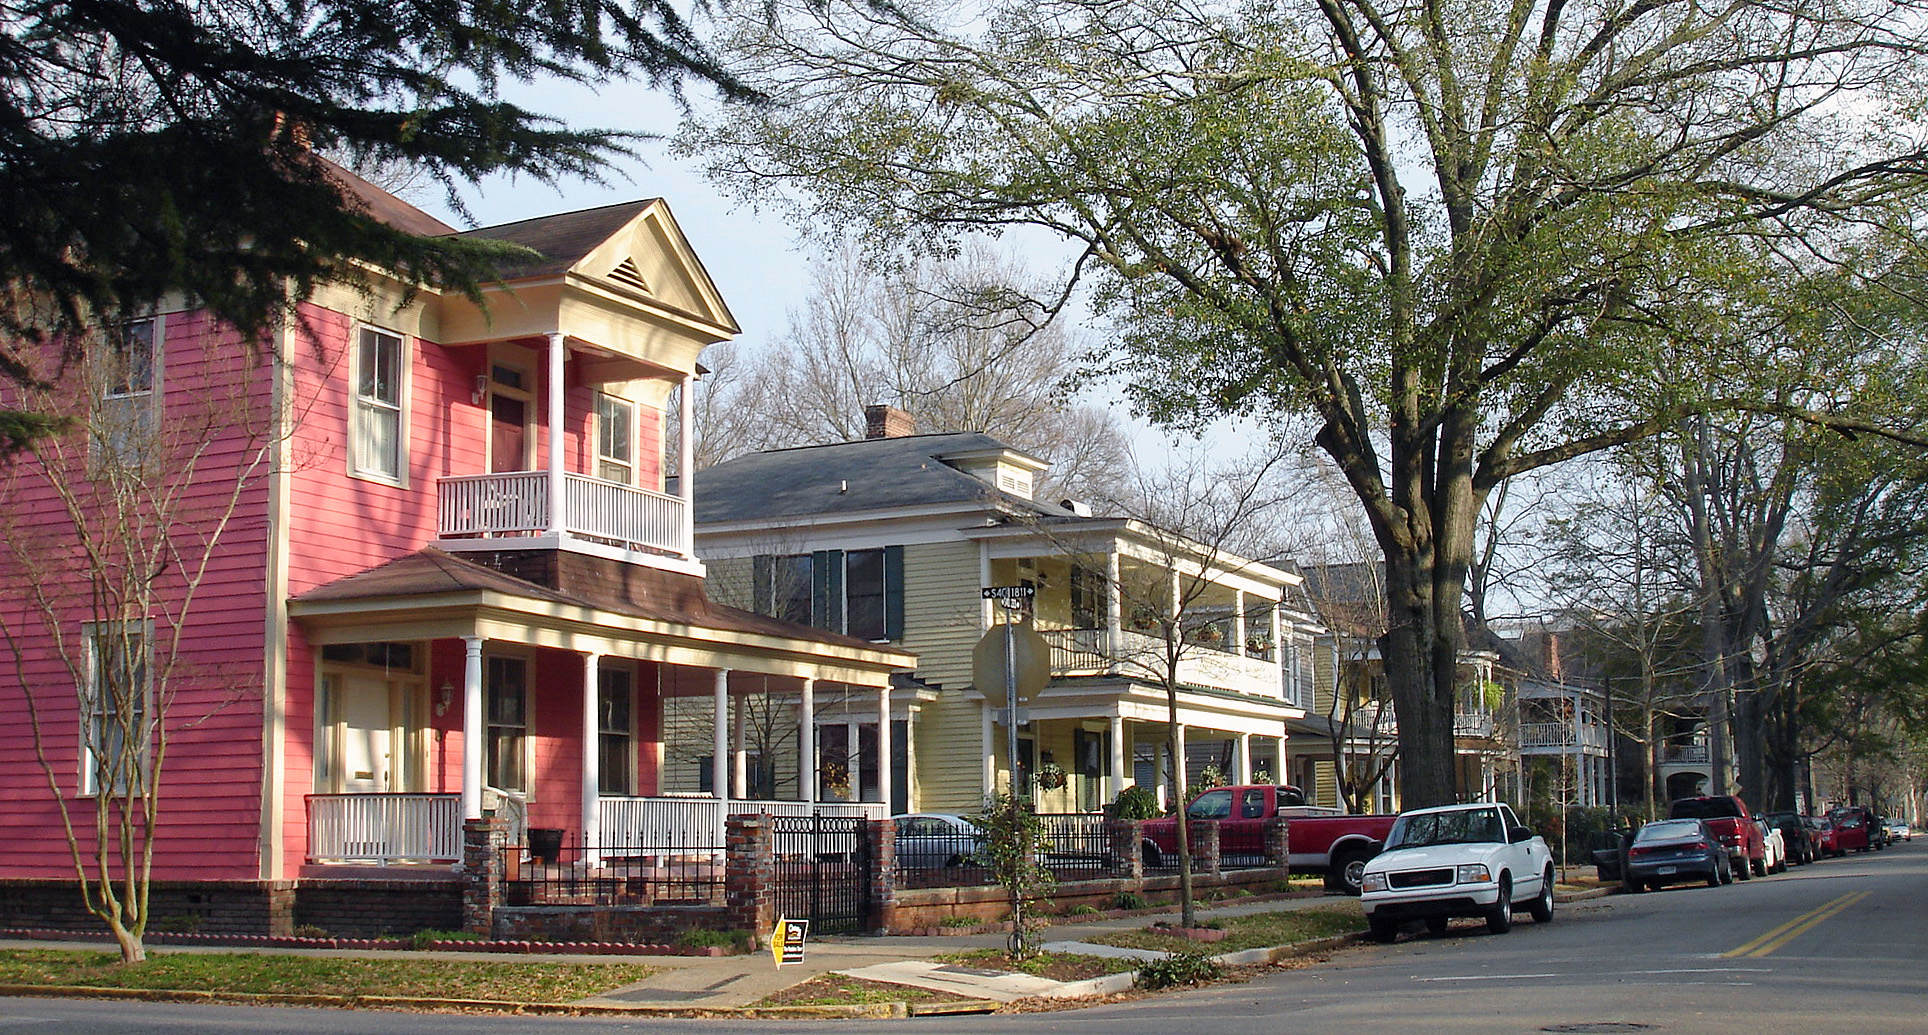 Elmwood park neighborhood